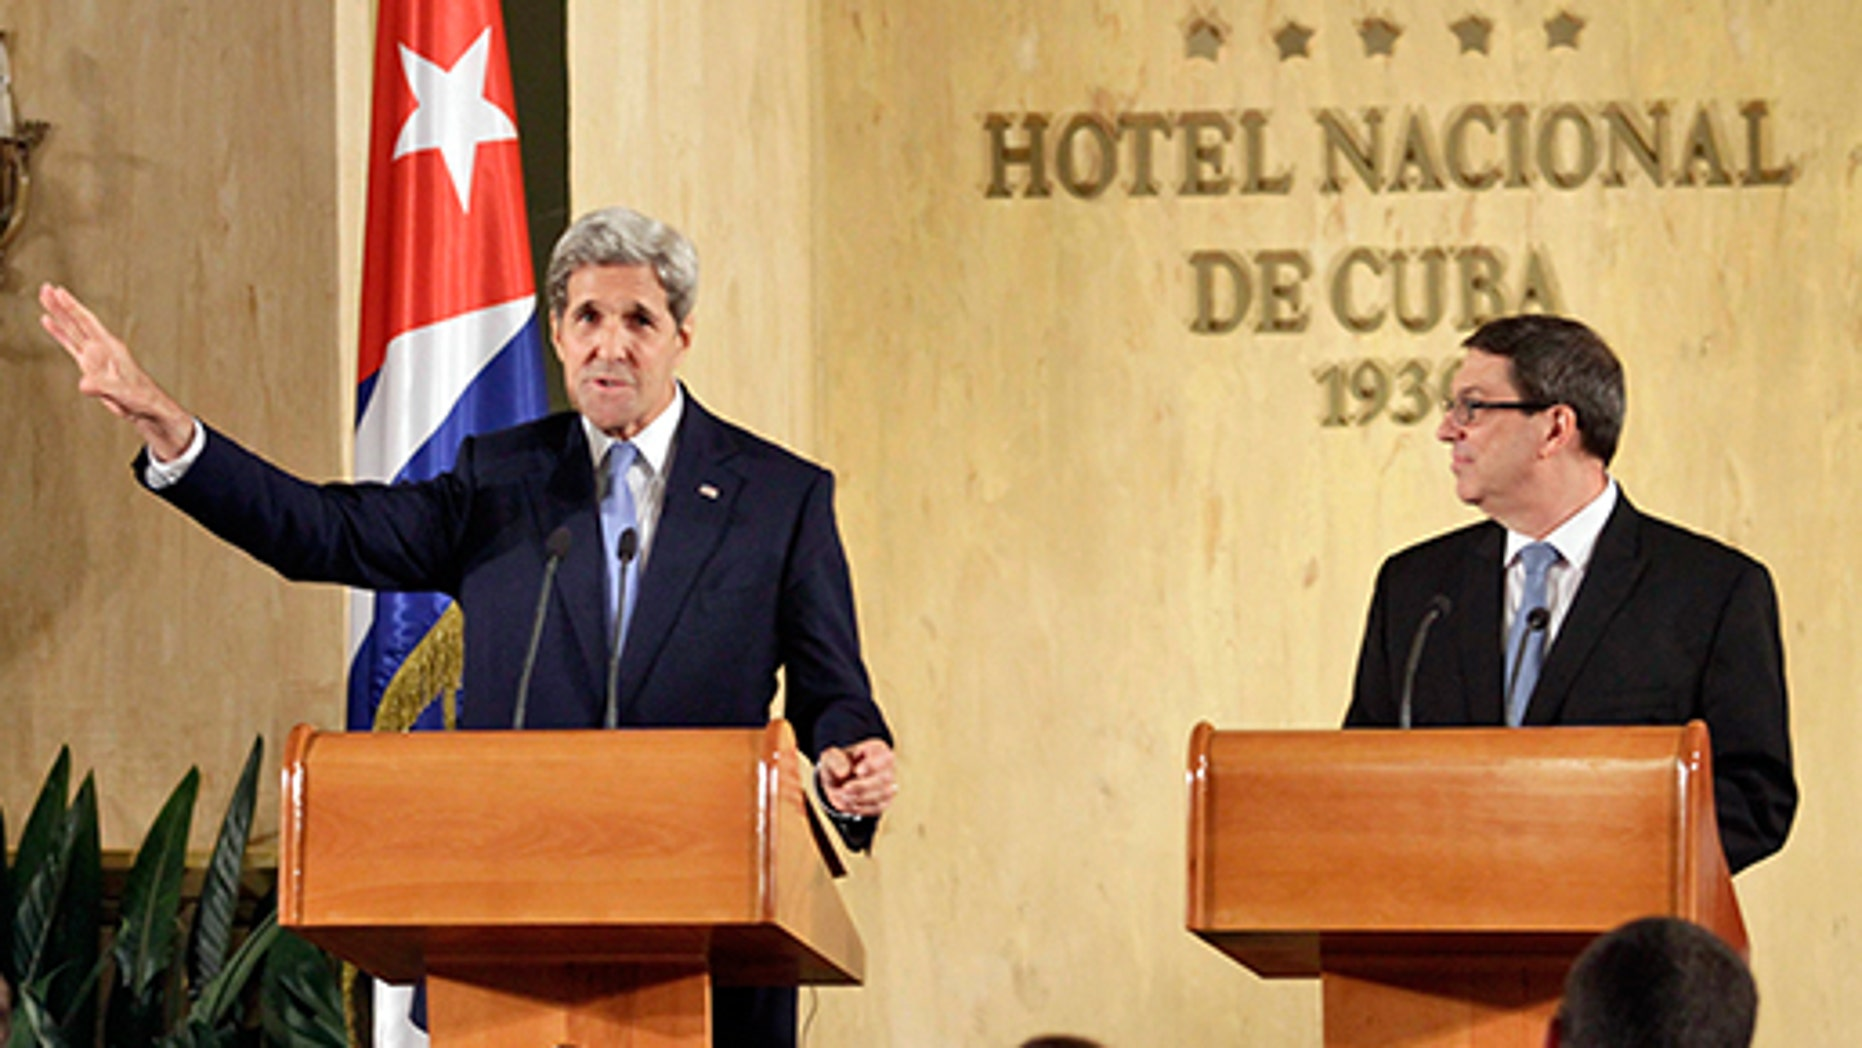 aption:HAVANA, CUBA - AUGUST 14: U.S. Secretary of State John Kerry (L) and Cuban Minister of Foreign Affairs Bruno Rodriguez Parrilla (R) give a joint press conference in the Hotel Nacional after a flag-raising ceremony at the U.S. Embassy in Cuba, on August 14, 2015 in Havana, Cuba. The first American Secretary of State to visit Cuba since 1945, Kerry presided over the flag-raising ceremony at the recently reopened U.S. Embassy, a symbolic act after the two Cold War enemies reestablished diplomatic relations in July. (Photo by Sven Creutzmann/Mambo Photo/Getty Images)